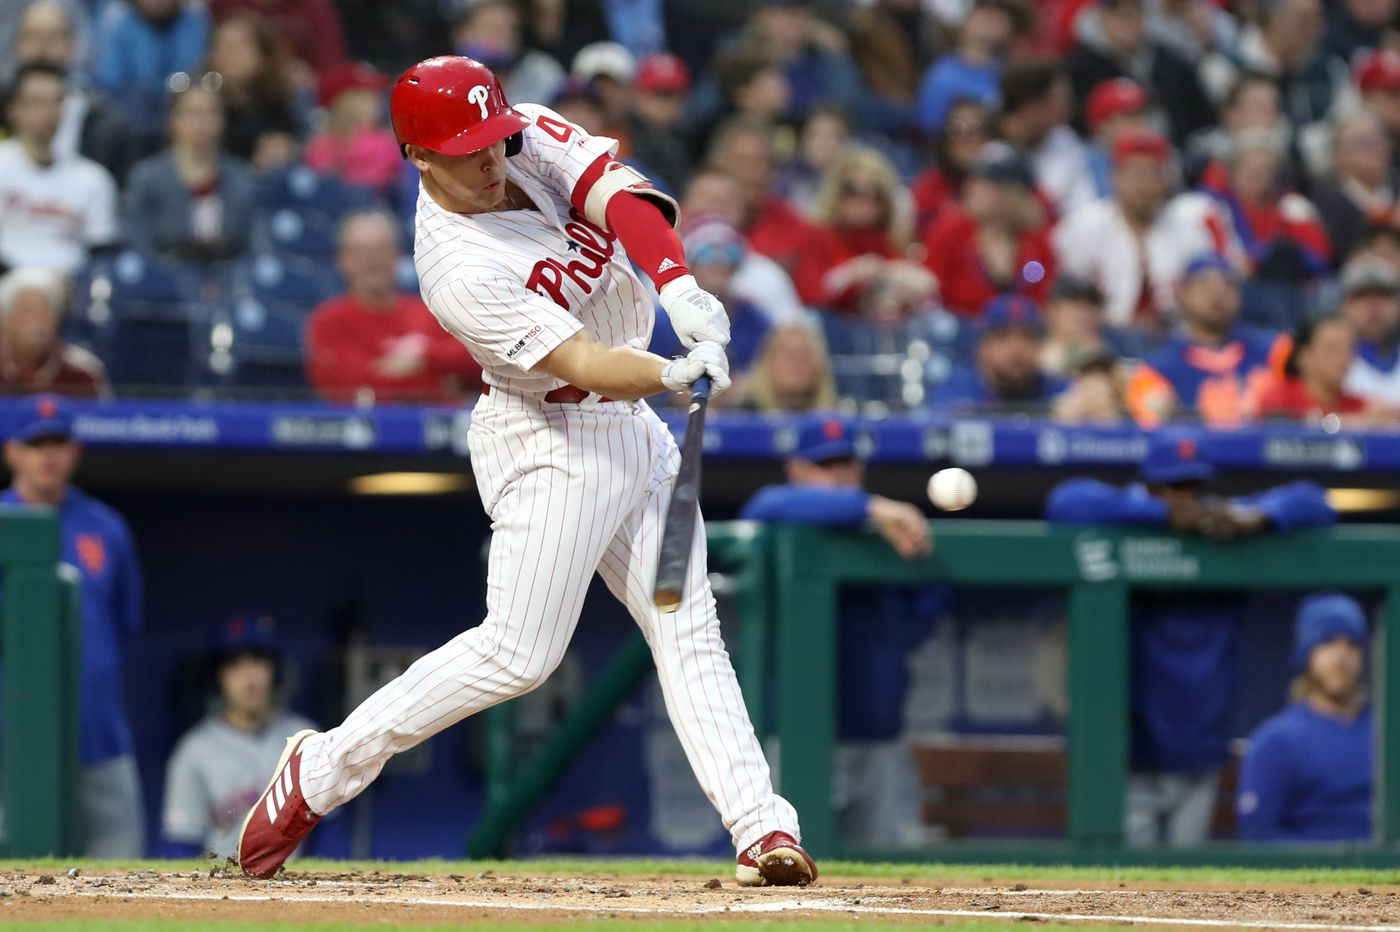 Phillies' Scott Kingery says his hamstring feels 100 percent after rehab starts in minor leagues